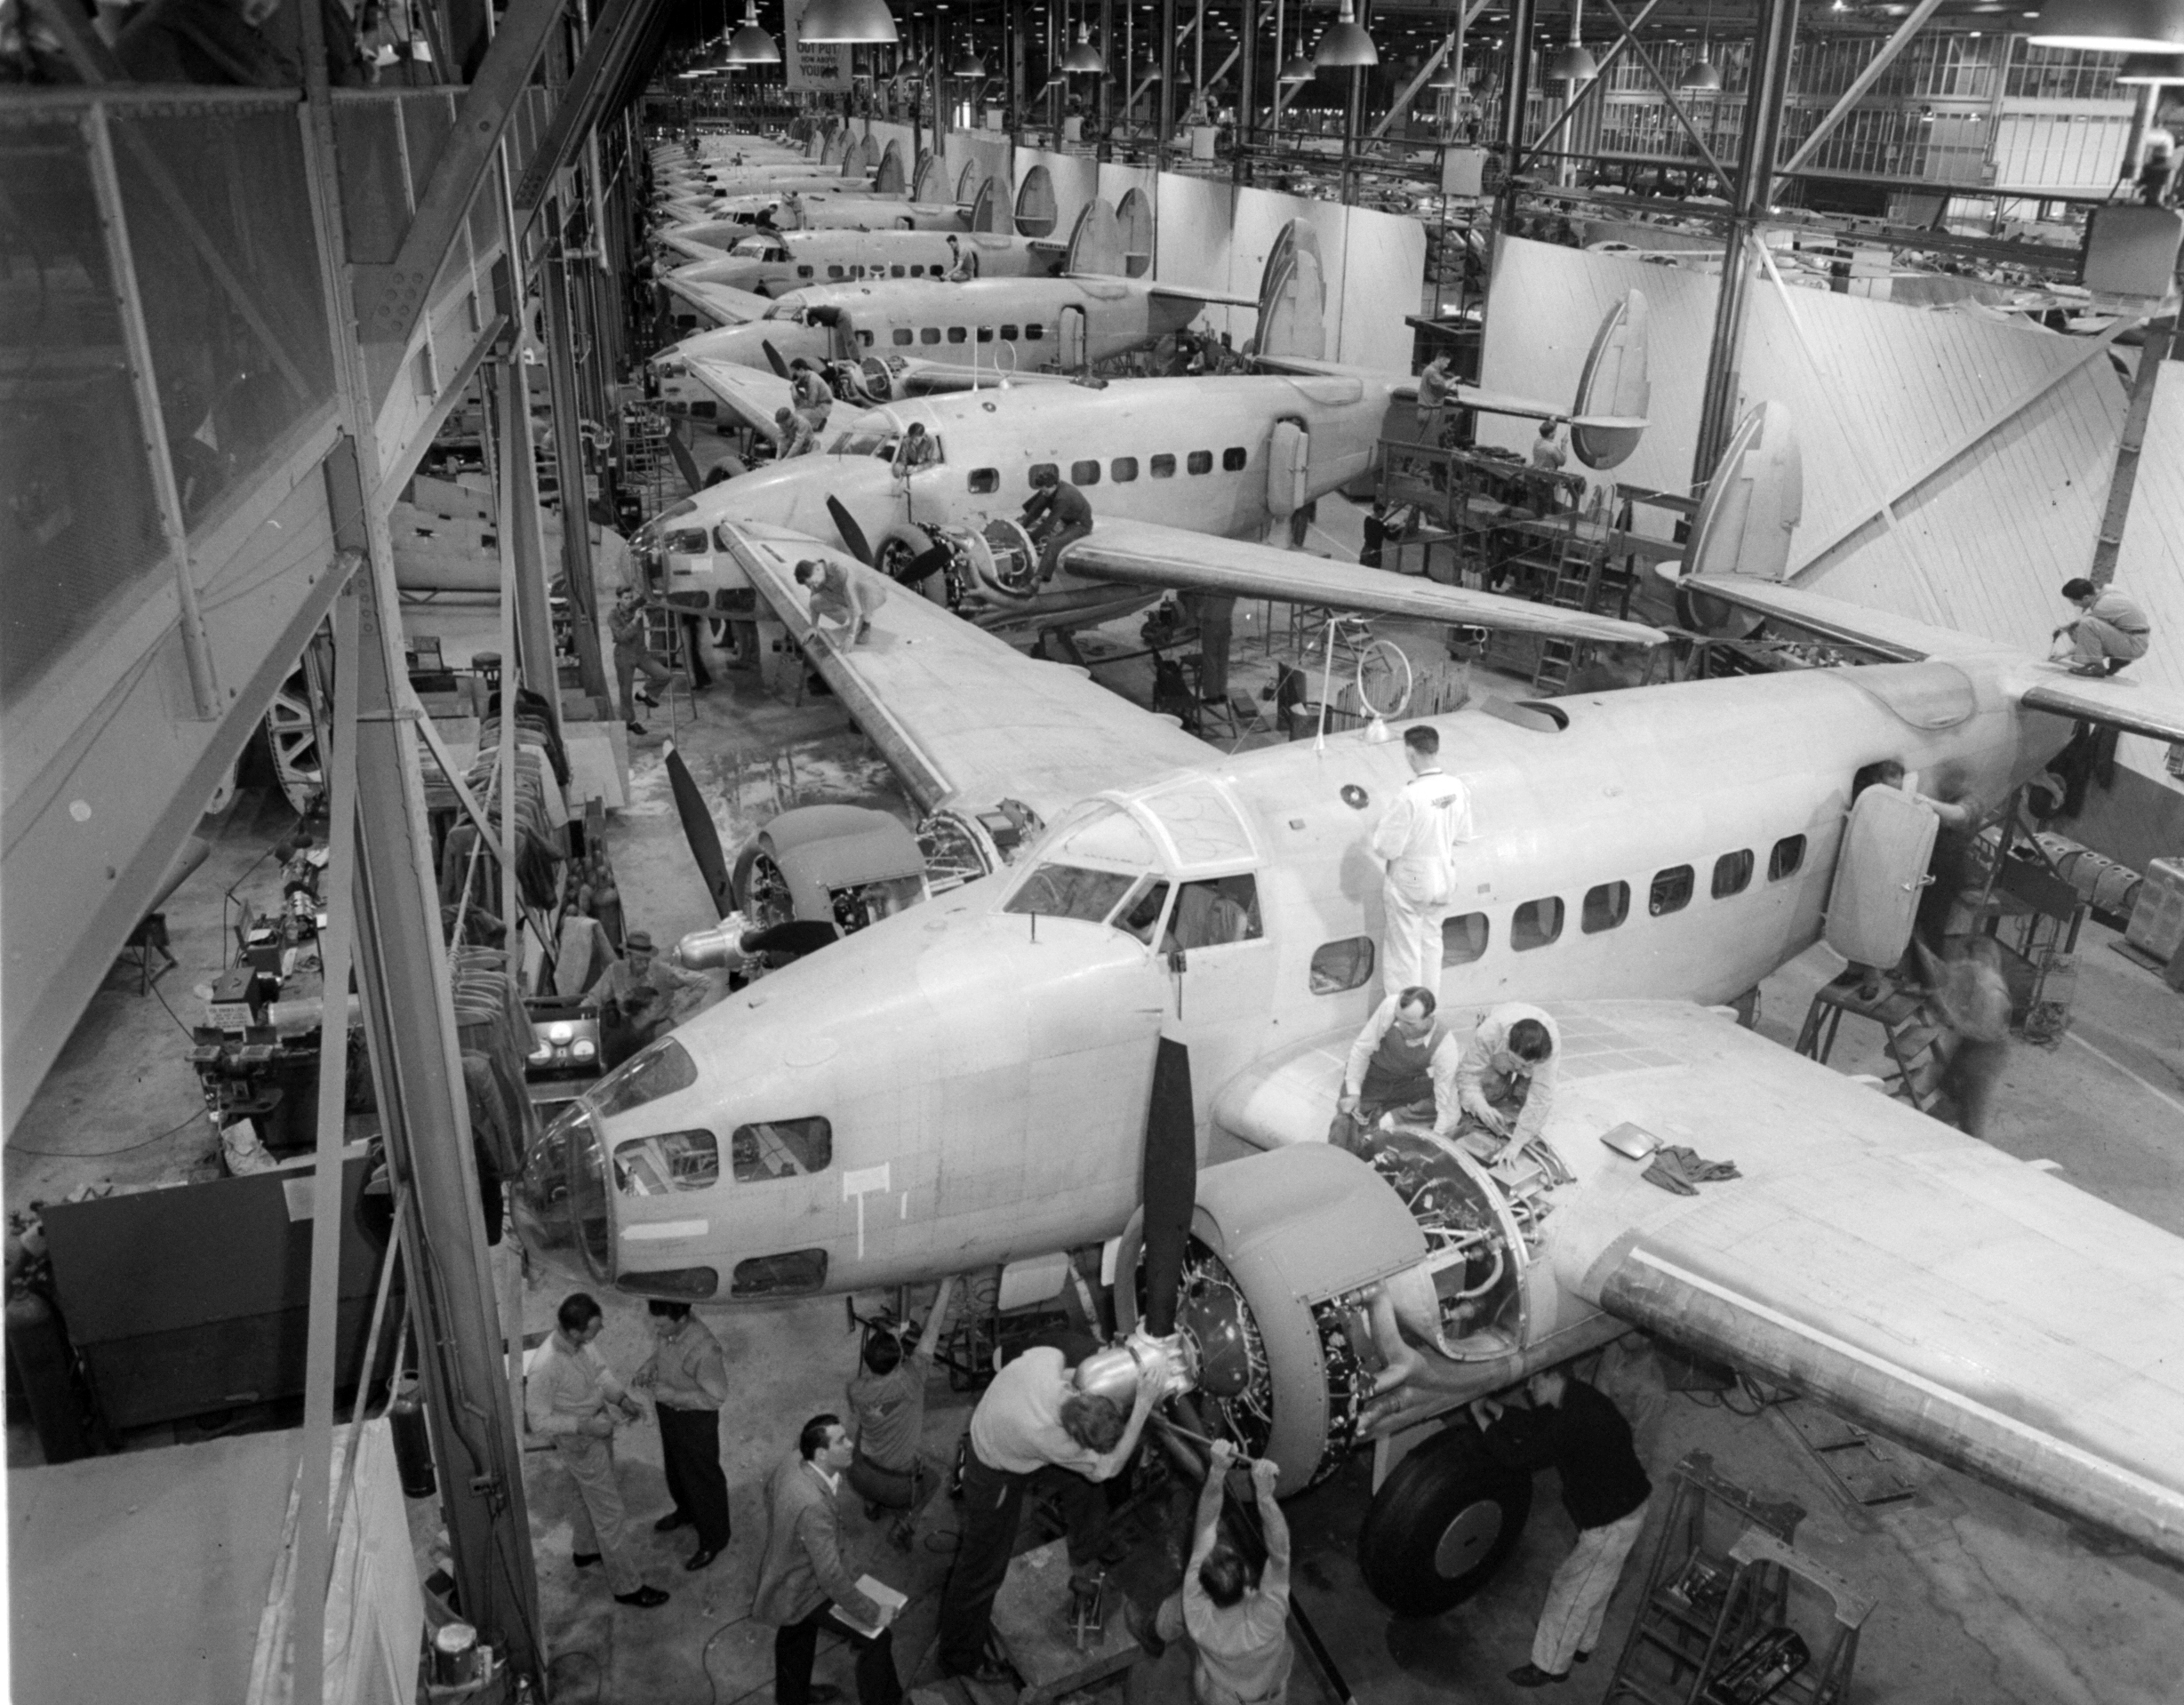 This assembly line is producing the Hudson Bombers used in World War II.